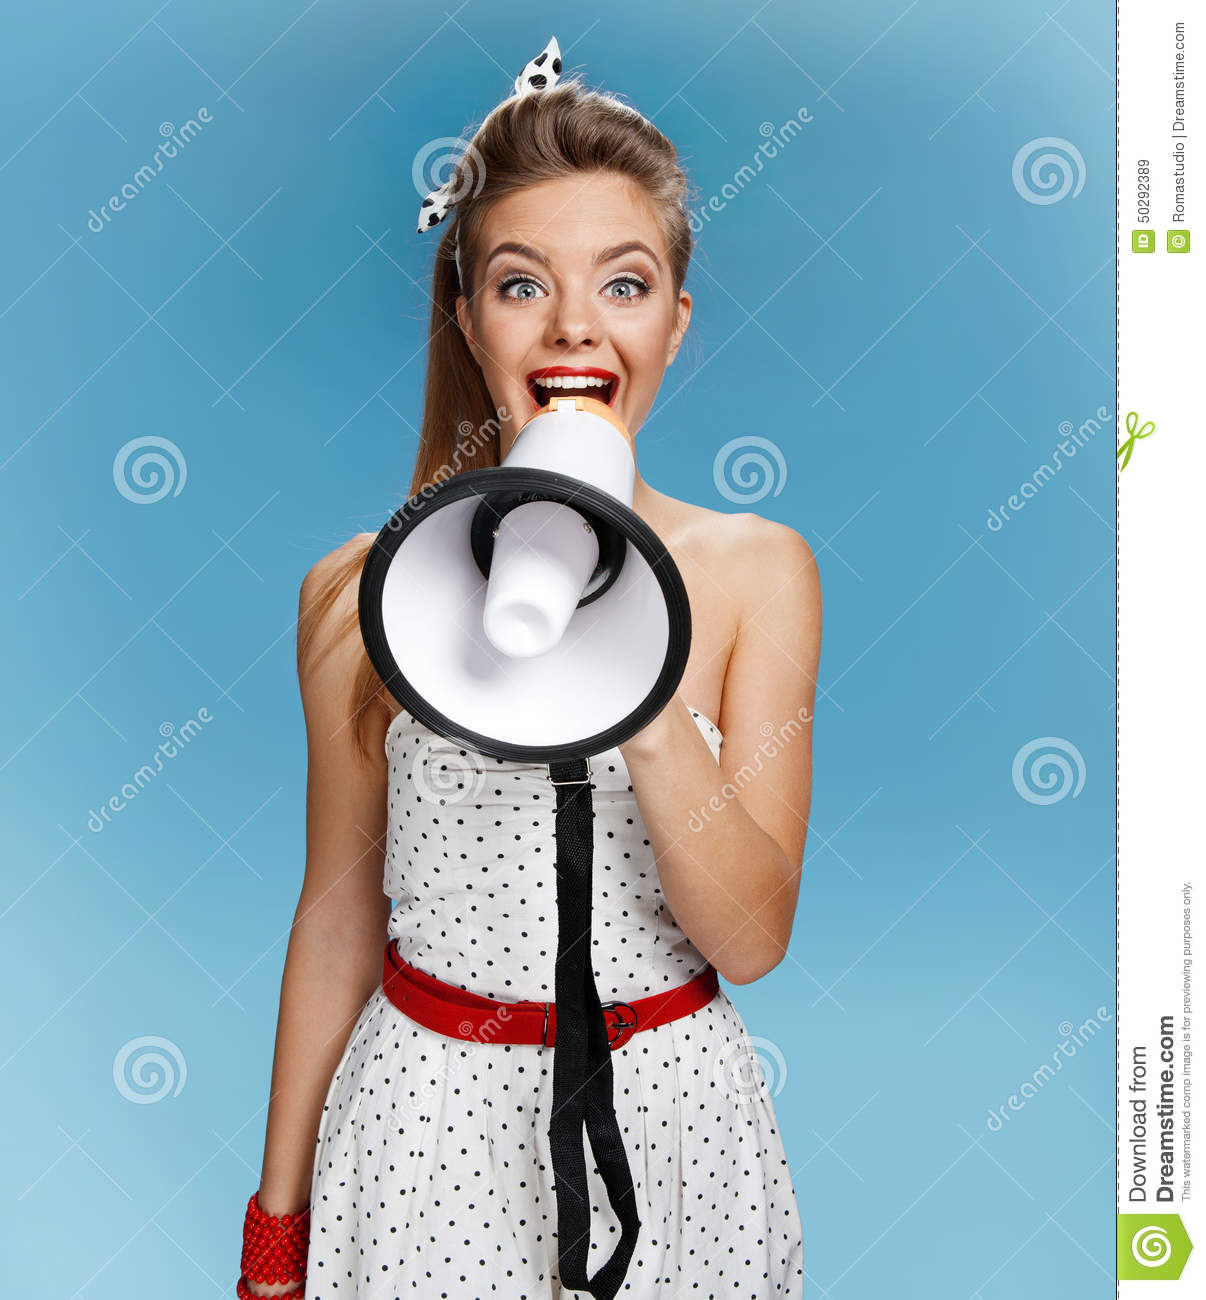 Beautiful young pin-up girl speak in megaphone, mouthpiece, speaking trumpet. Filmmaking or film production concept